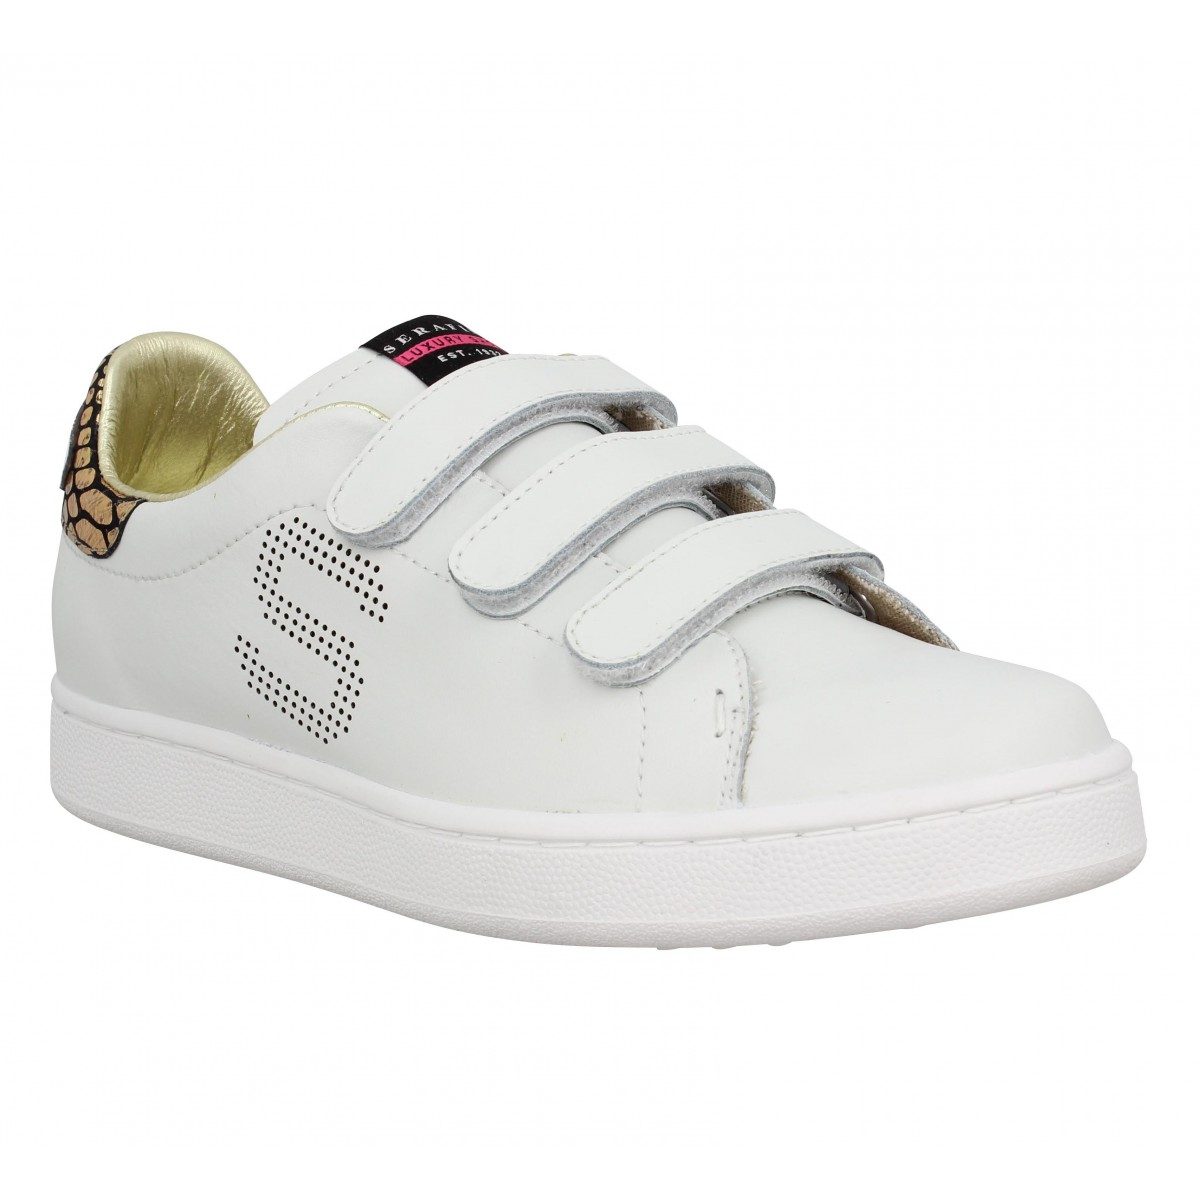 Baskets SERAFINI Connors velcro cuir Femme Blanc + Or